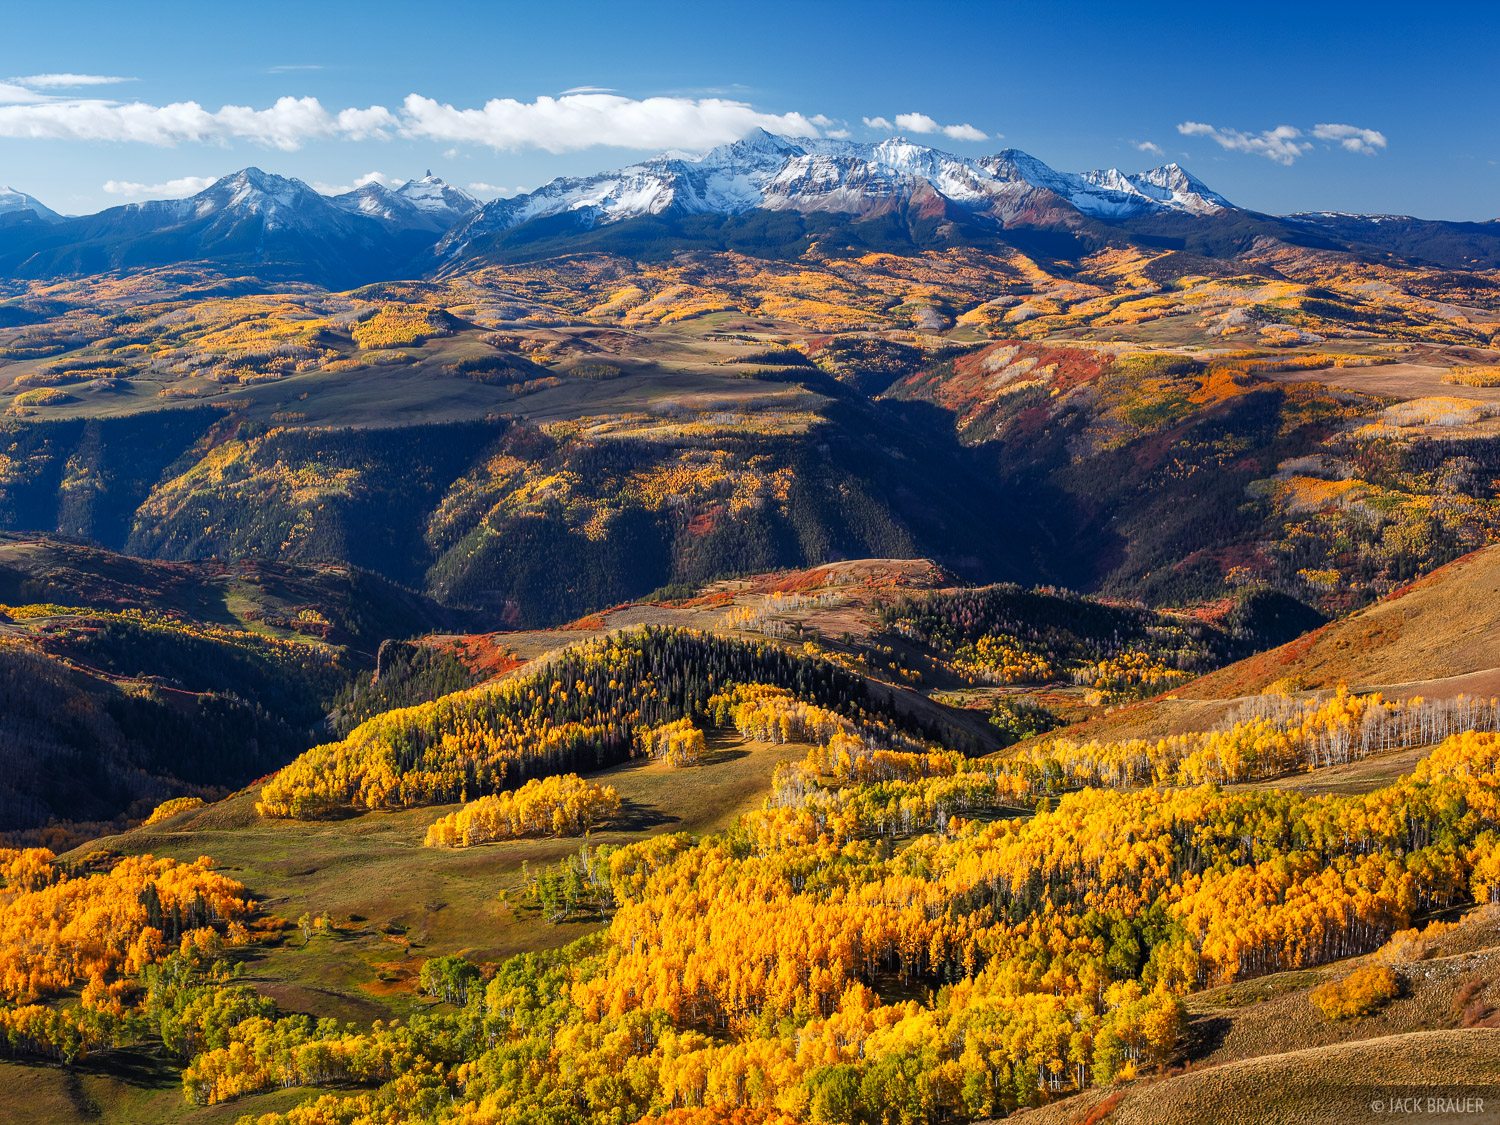 A sweeping view of Wilson Peak and Wilson Mesa and its many aspen groves, as seen from Last Dollar Mountain - September.